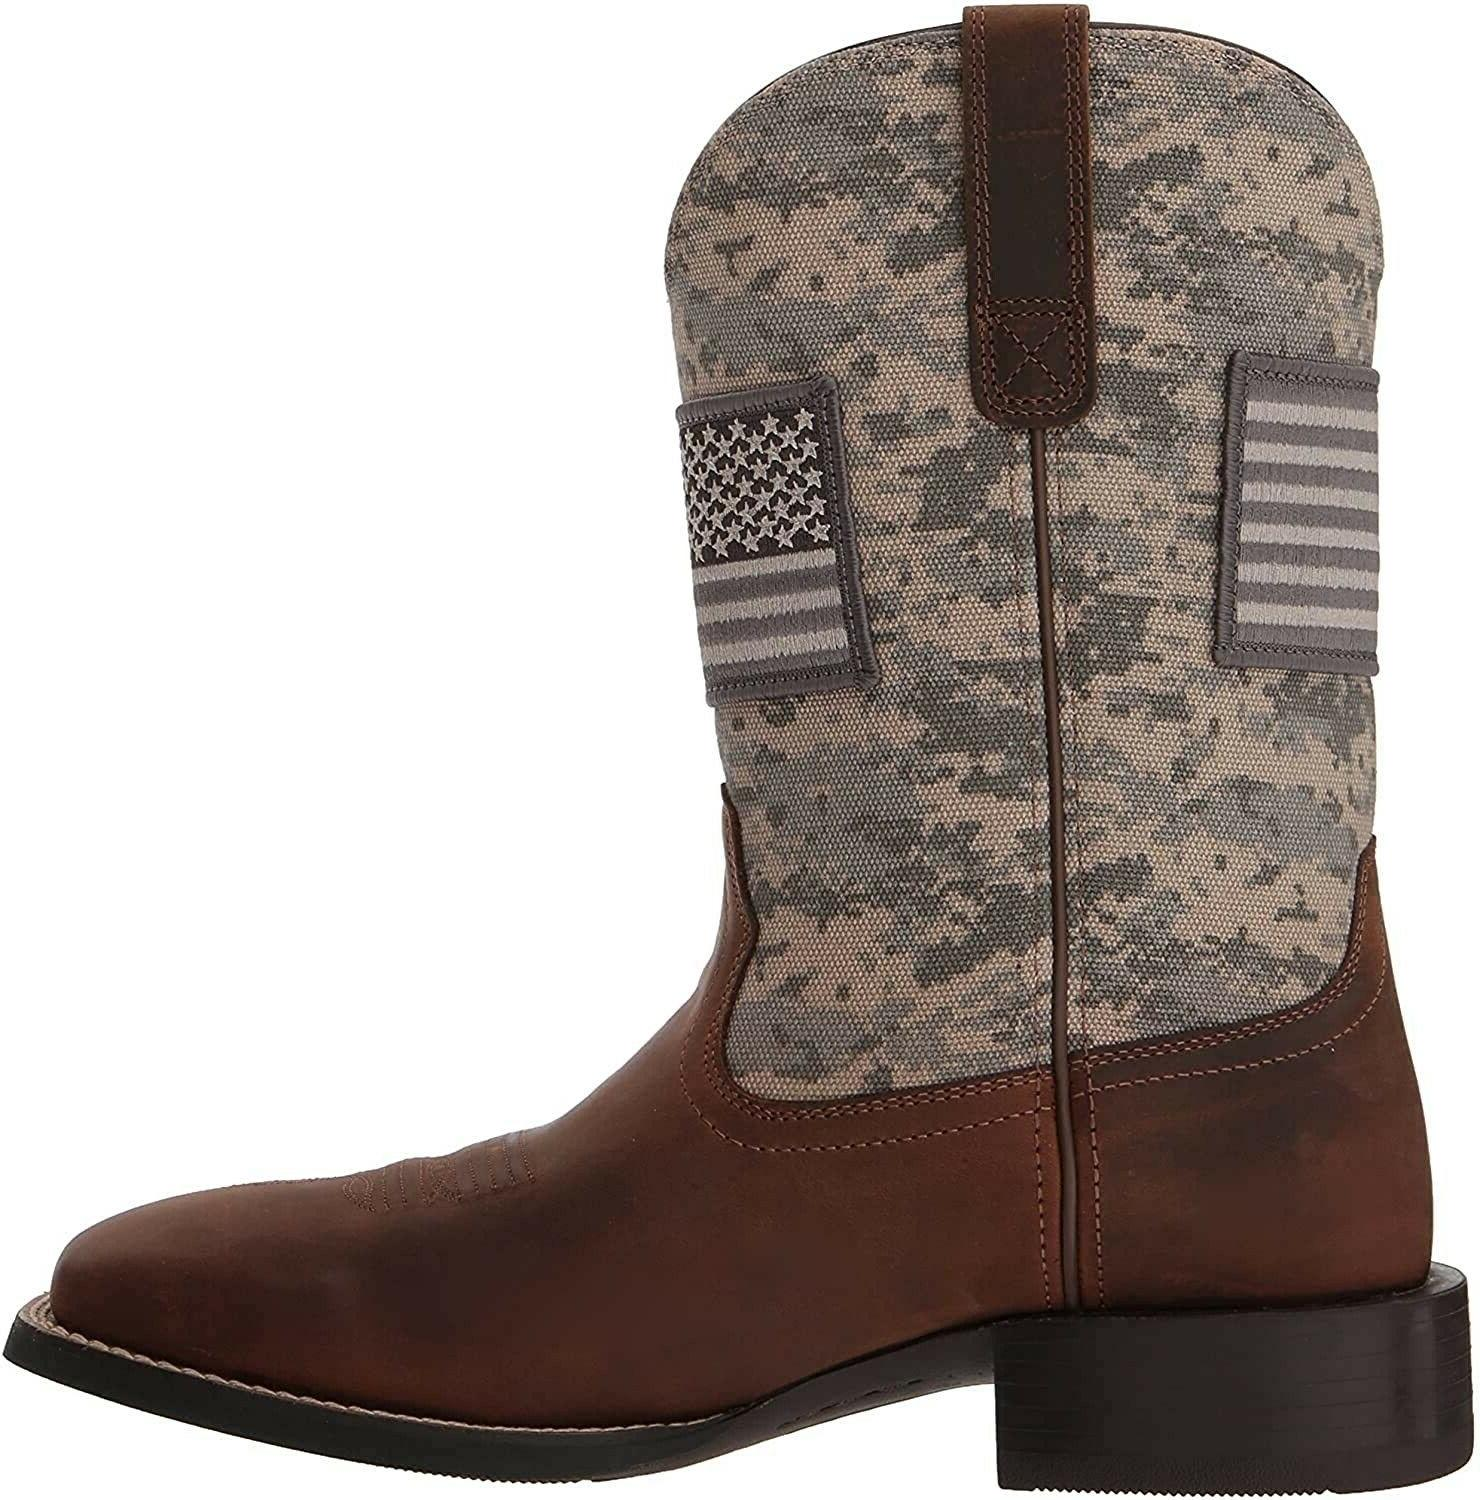 Ariat 244038 Patriot Boots Camo Print Wide